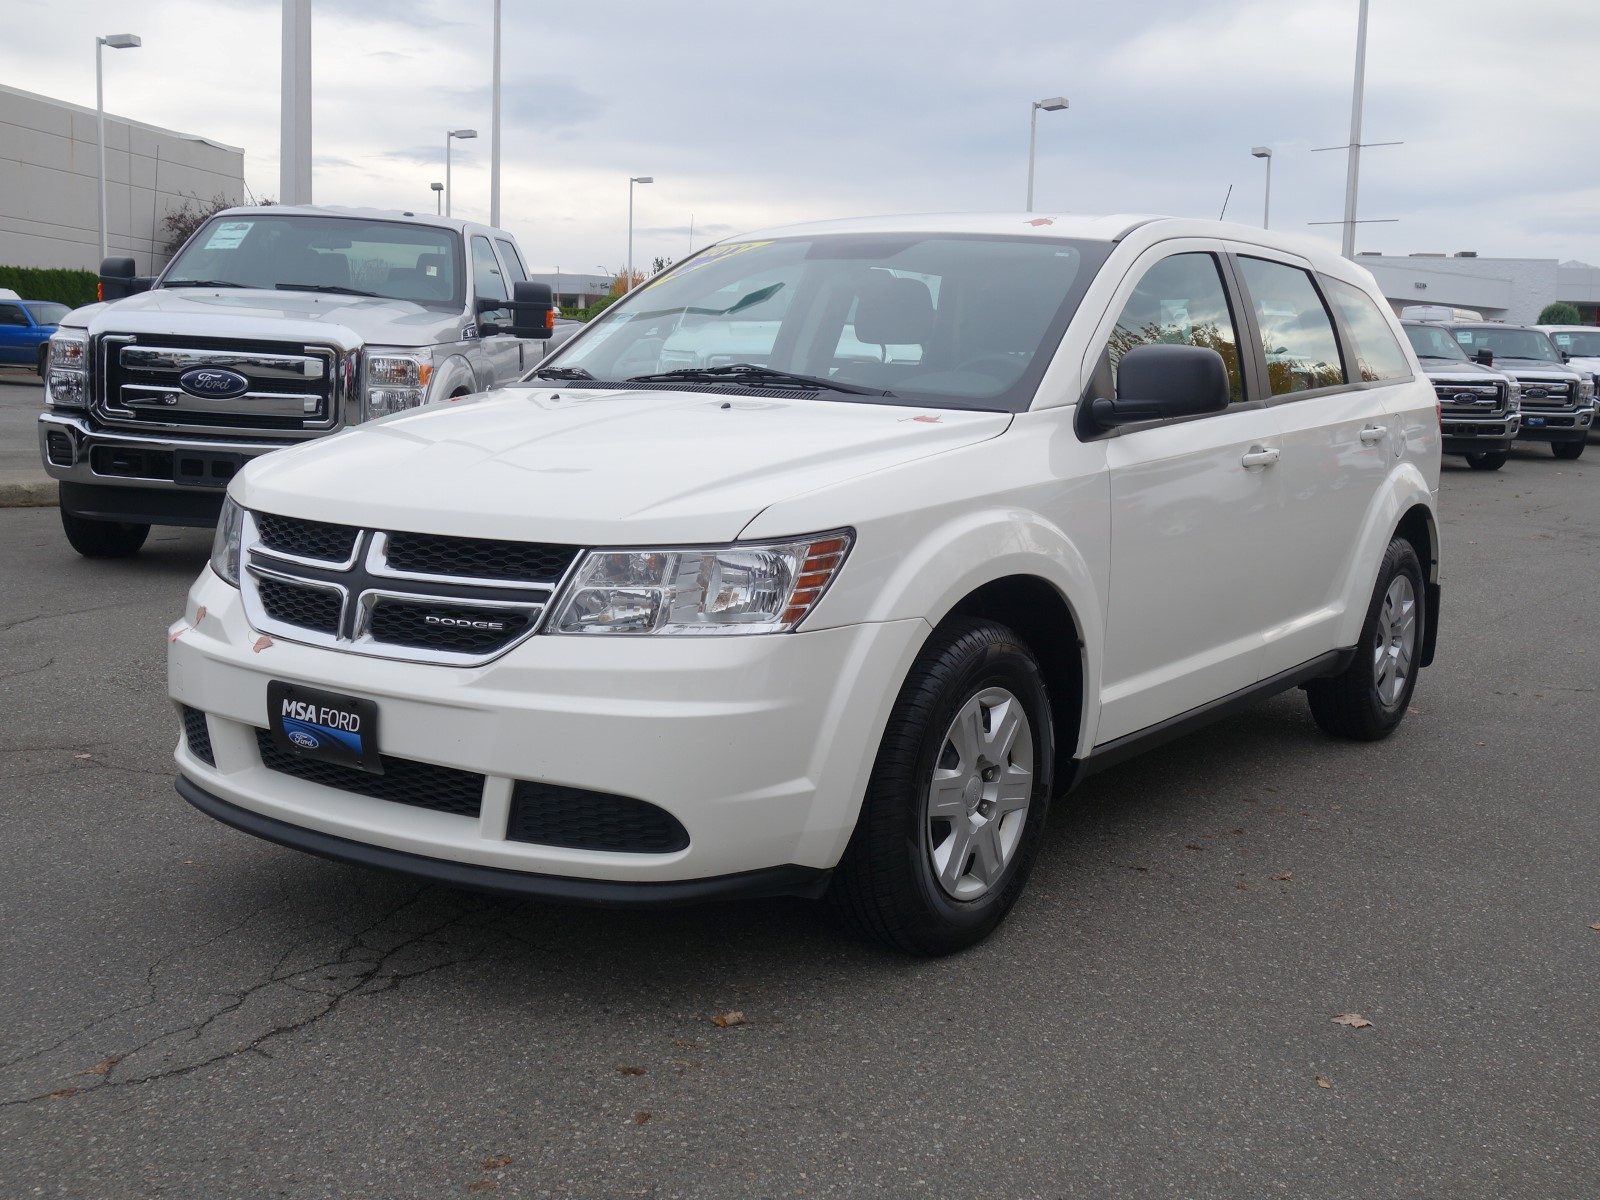 2011 dodge journey fraser valley auto mall ca pre owned inventory. Black Bedroom Furniture Sets. Home Design Ideas